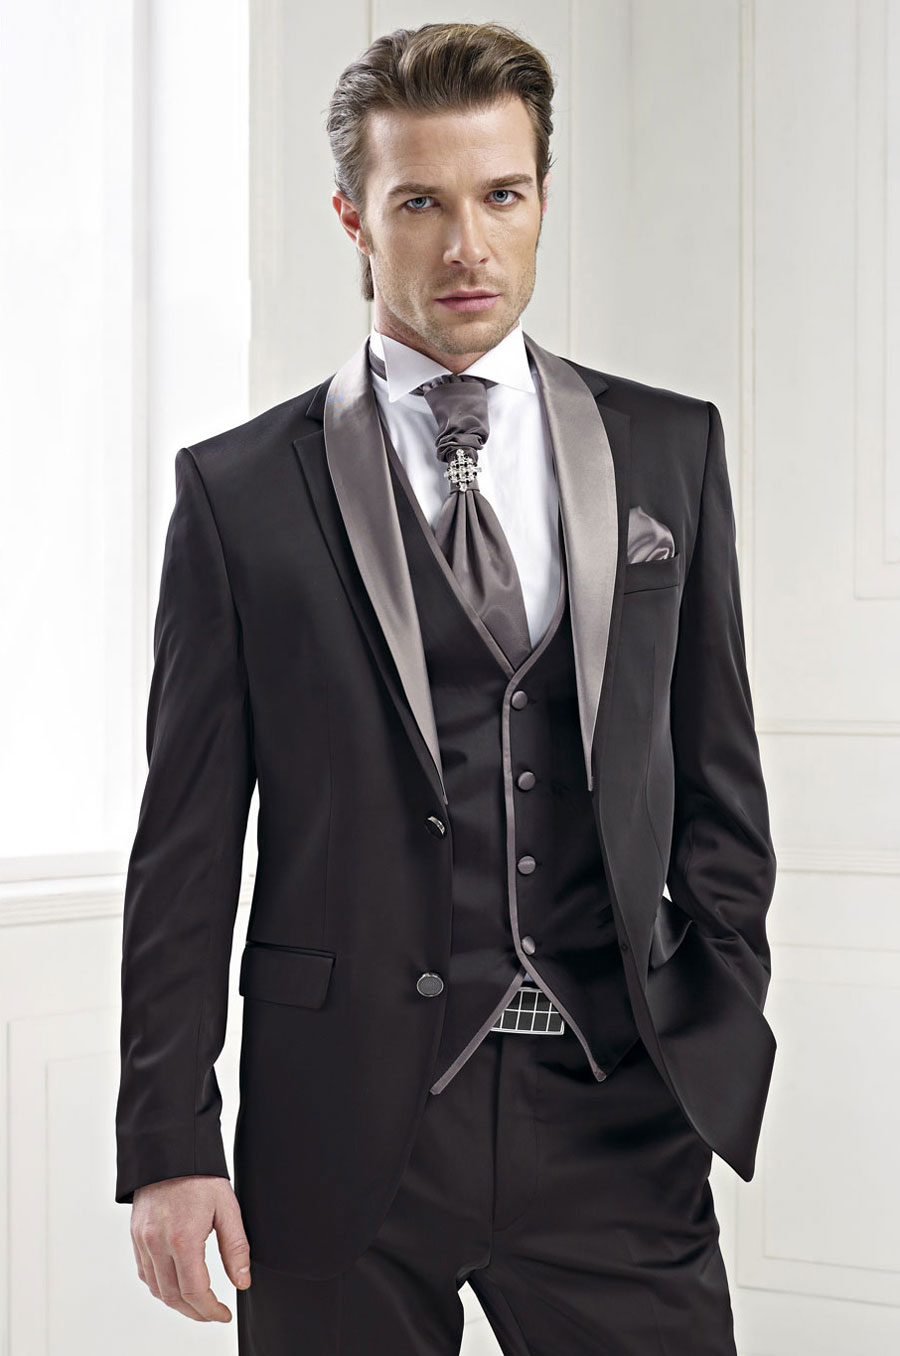 wedding suit for men photo - 1